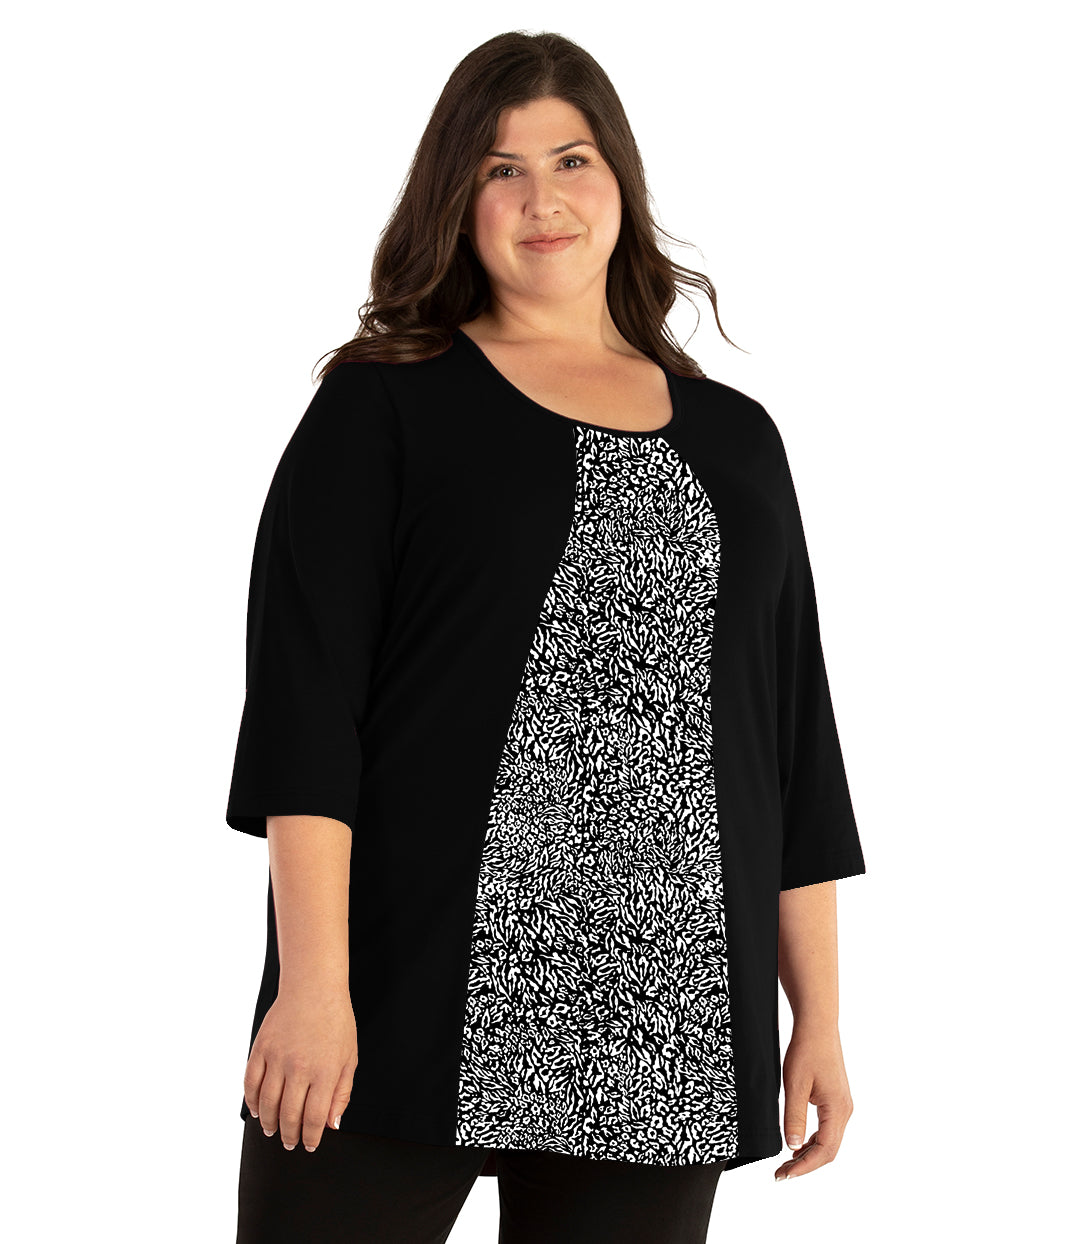 Stretch Naturals Lite 3/4 Sleeve Swing Top Black with Wild Print-Tops 3/4 Sleeve Tunic-Hop Wo Trading Co Ltd-XL-Black Wild Print-JunoActive